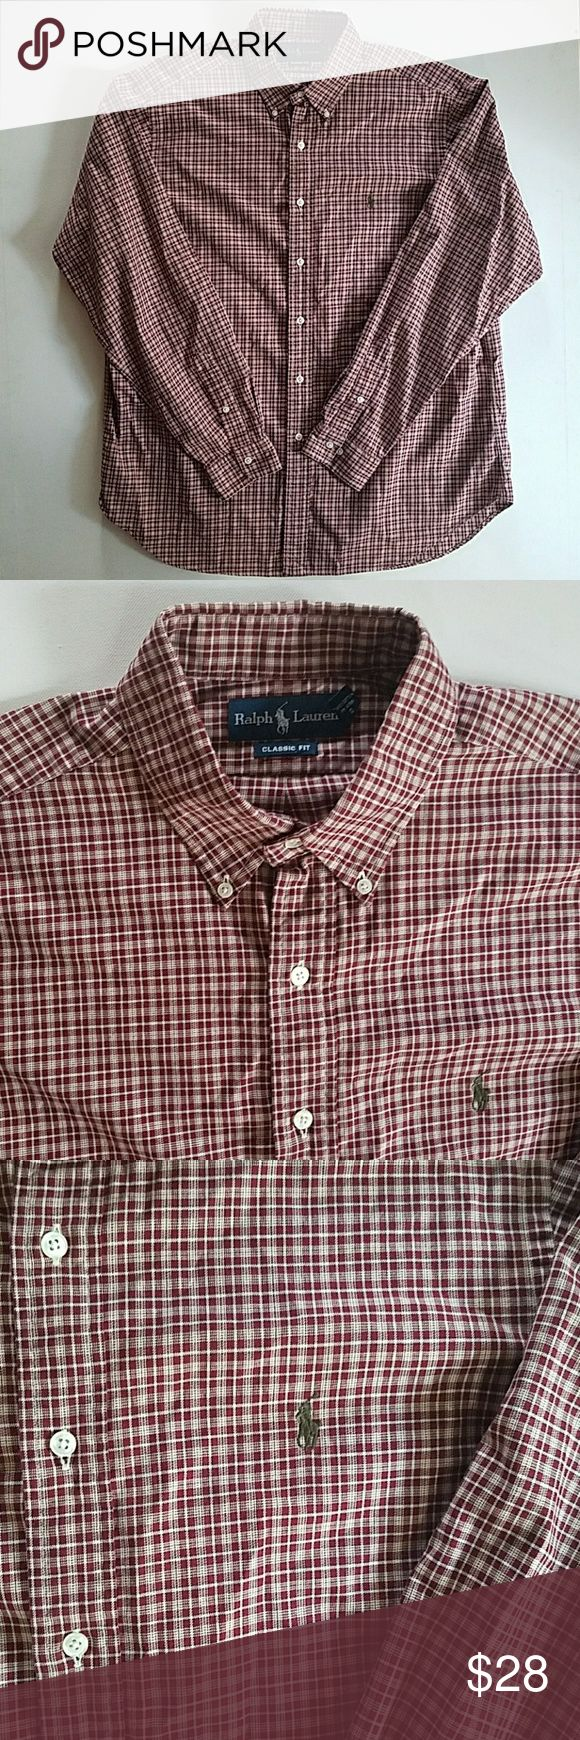 POLO RALPH LAUREN men's plaid shirt sz. 17 XL Excellent condition soft cotton burgundy and cream plaid with olive colored jockey embroidery on the chest. Size 17 neck or extra large men's Polo by Ralph Lauren Shirts Casual Button Down Shirts